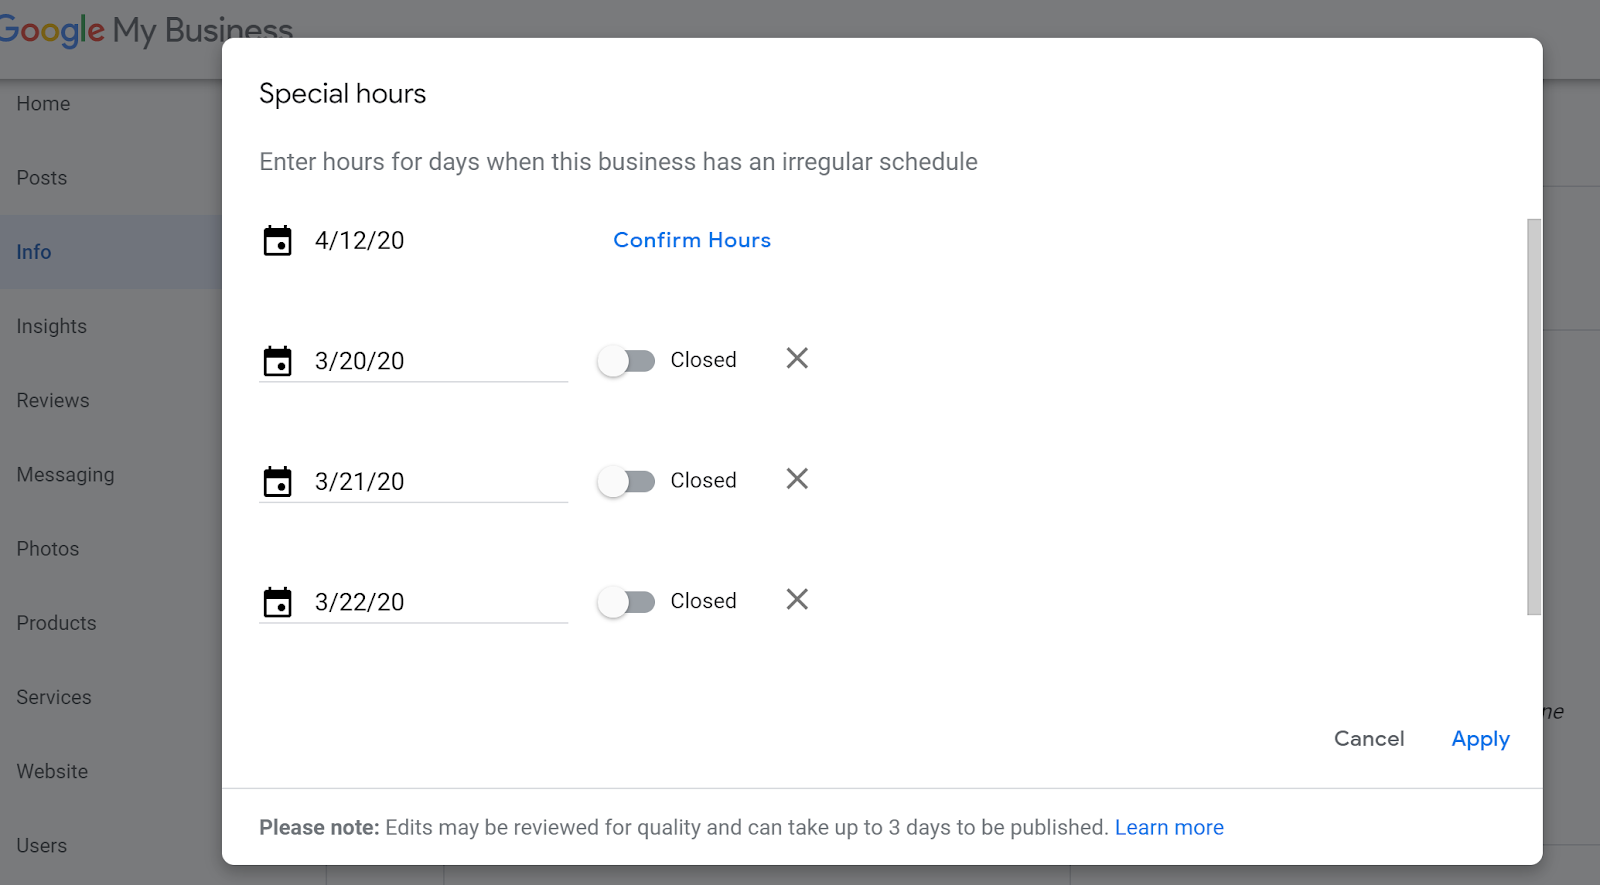 setting special business hours on Google My Business